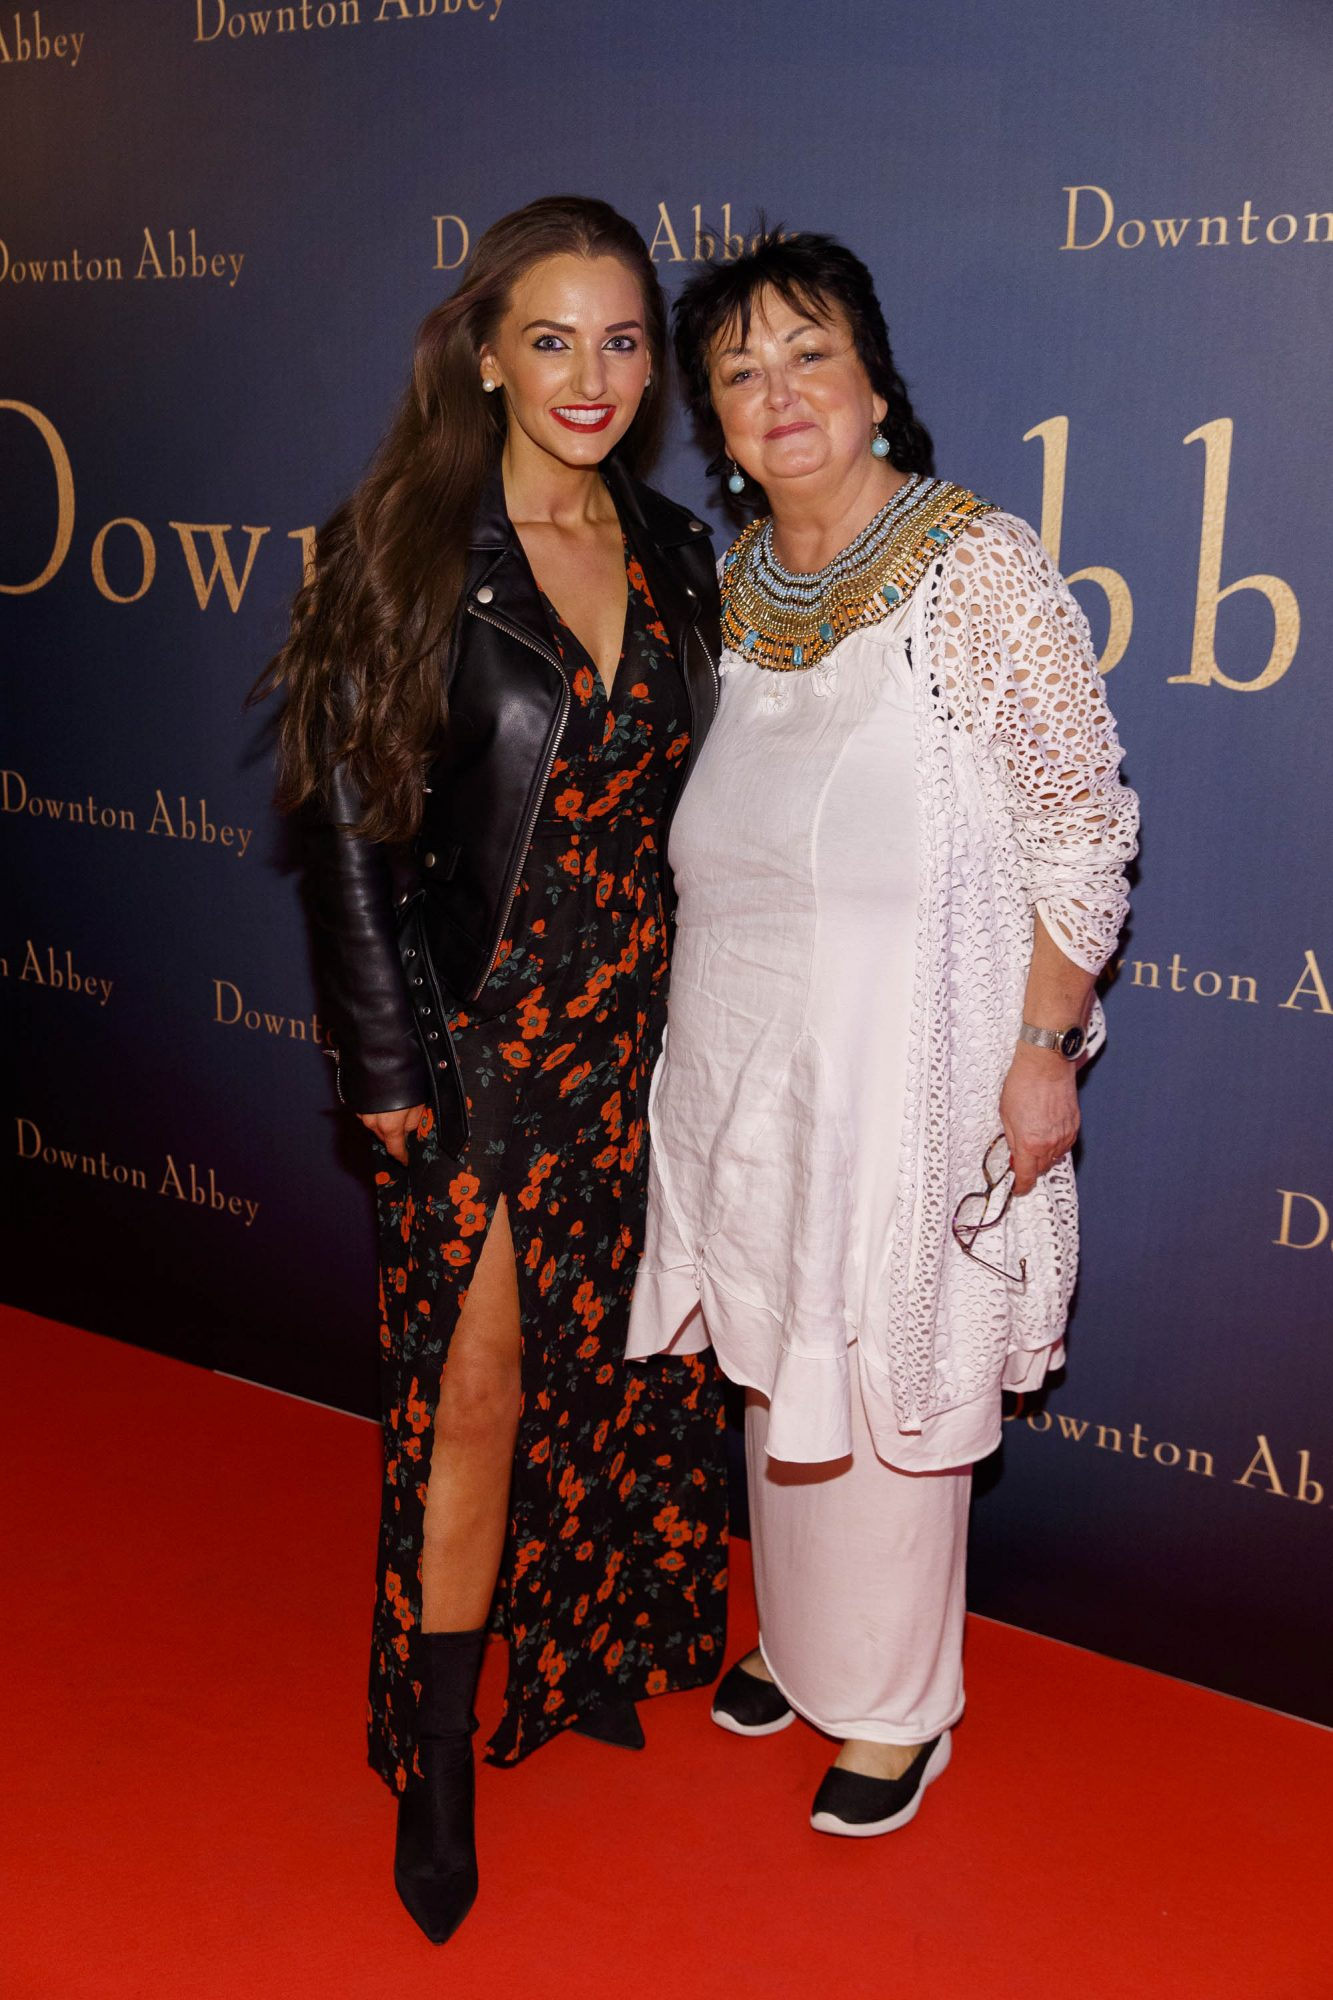 Dearbhla Toal and Noleen Toal mother  pictured at the Universal Pictures Irish premiere screening of DOWNTON ABBEY at The Stella Theatre, Rathmines. Releasing in cinemas across Ireland from this Friday September 13th, starring the original cast, the worldwide phenomenon DOWNTON ABBEY, becomes a grand motion picture event. Picture Andres Poveda